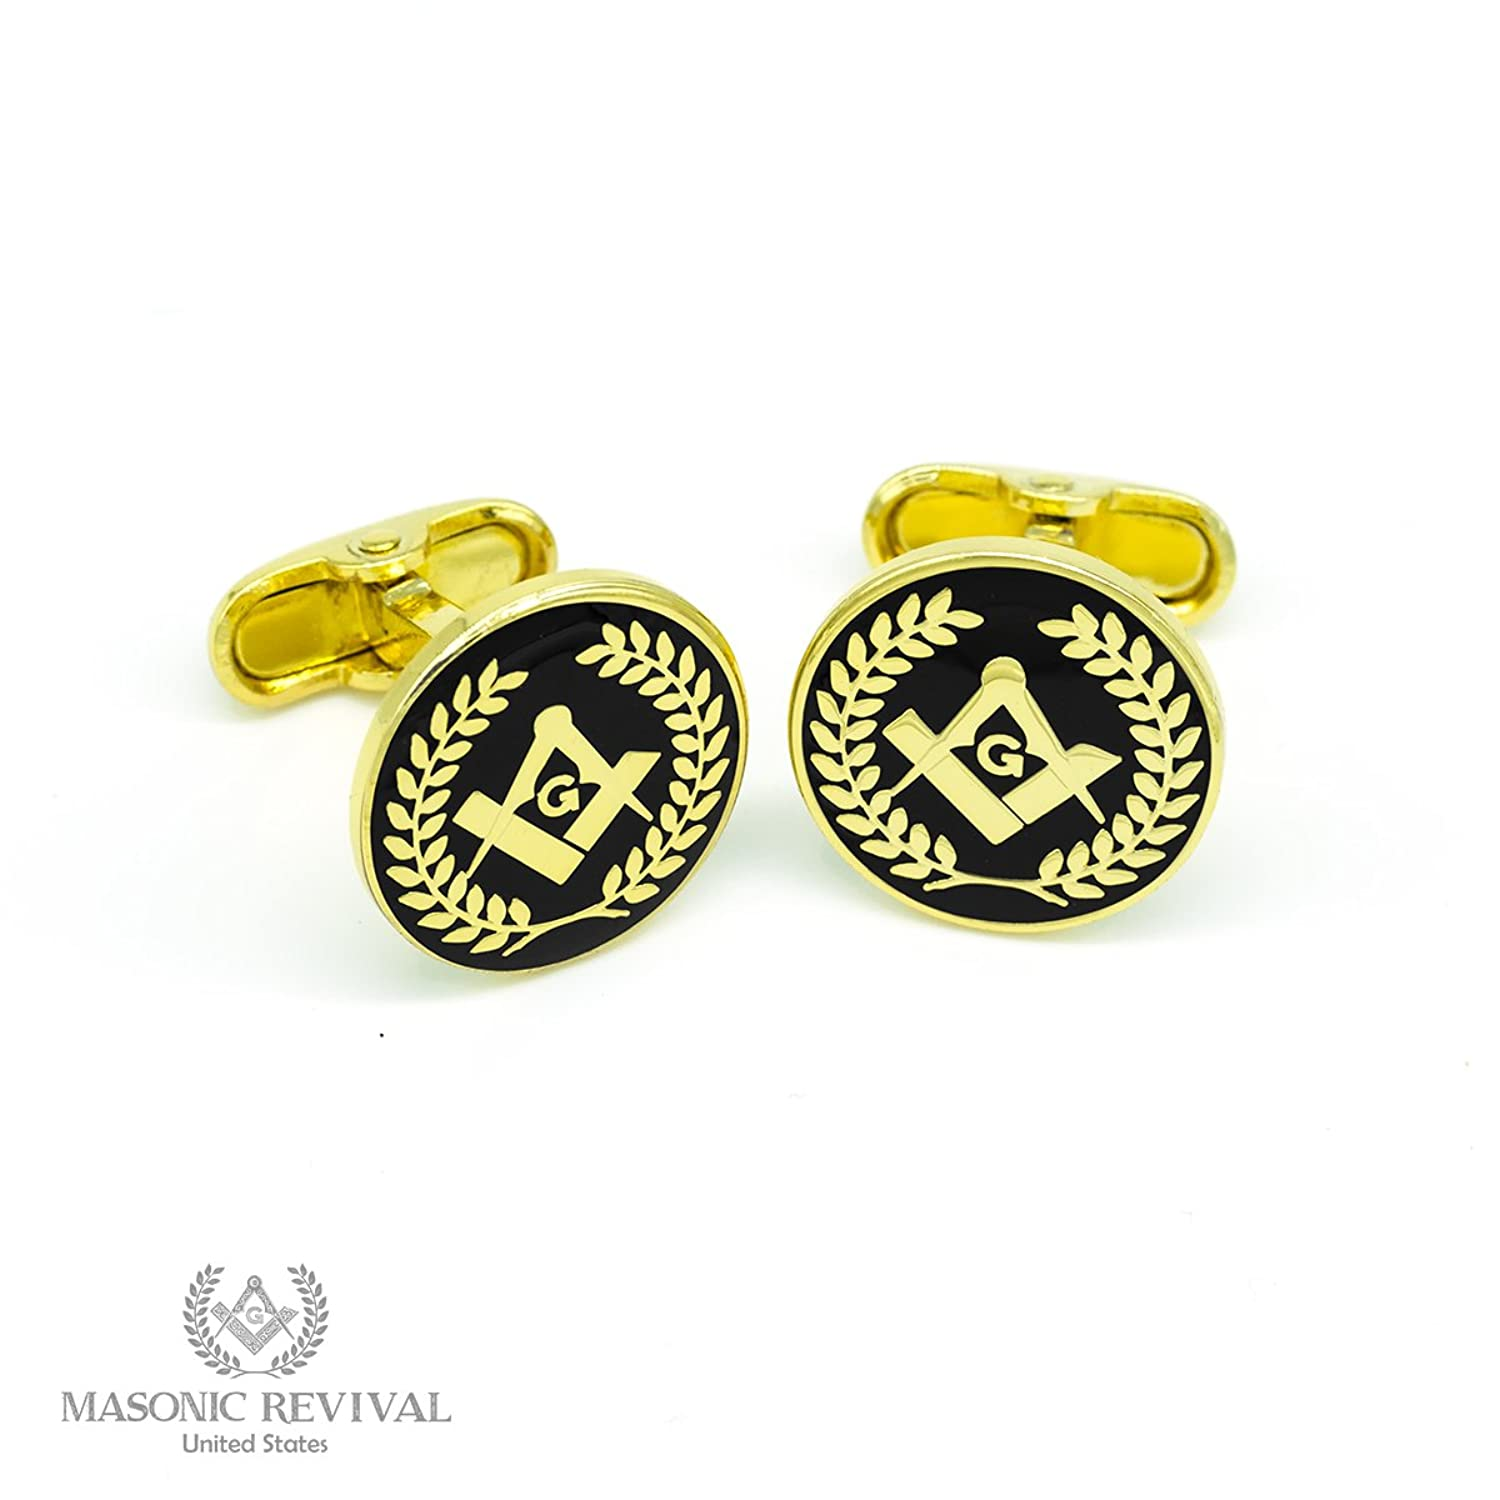 Square and Compass Wreath Cufflinks by Masonic Revival (Gold)